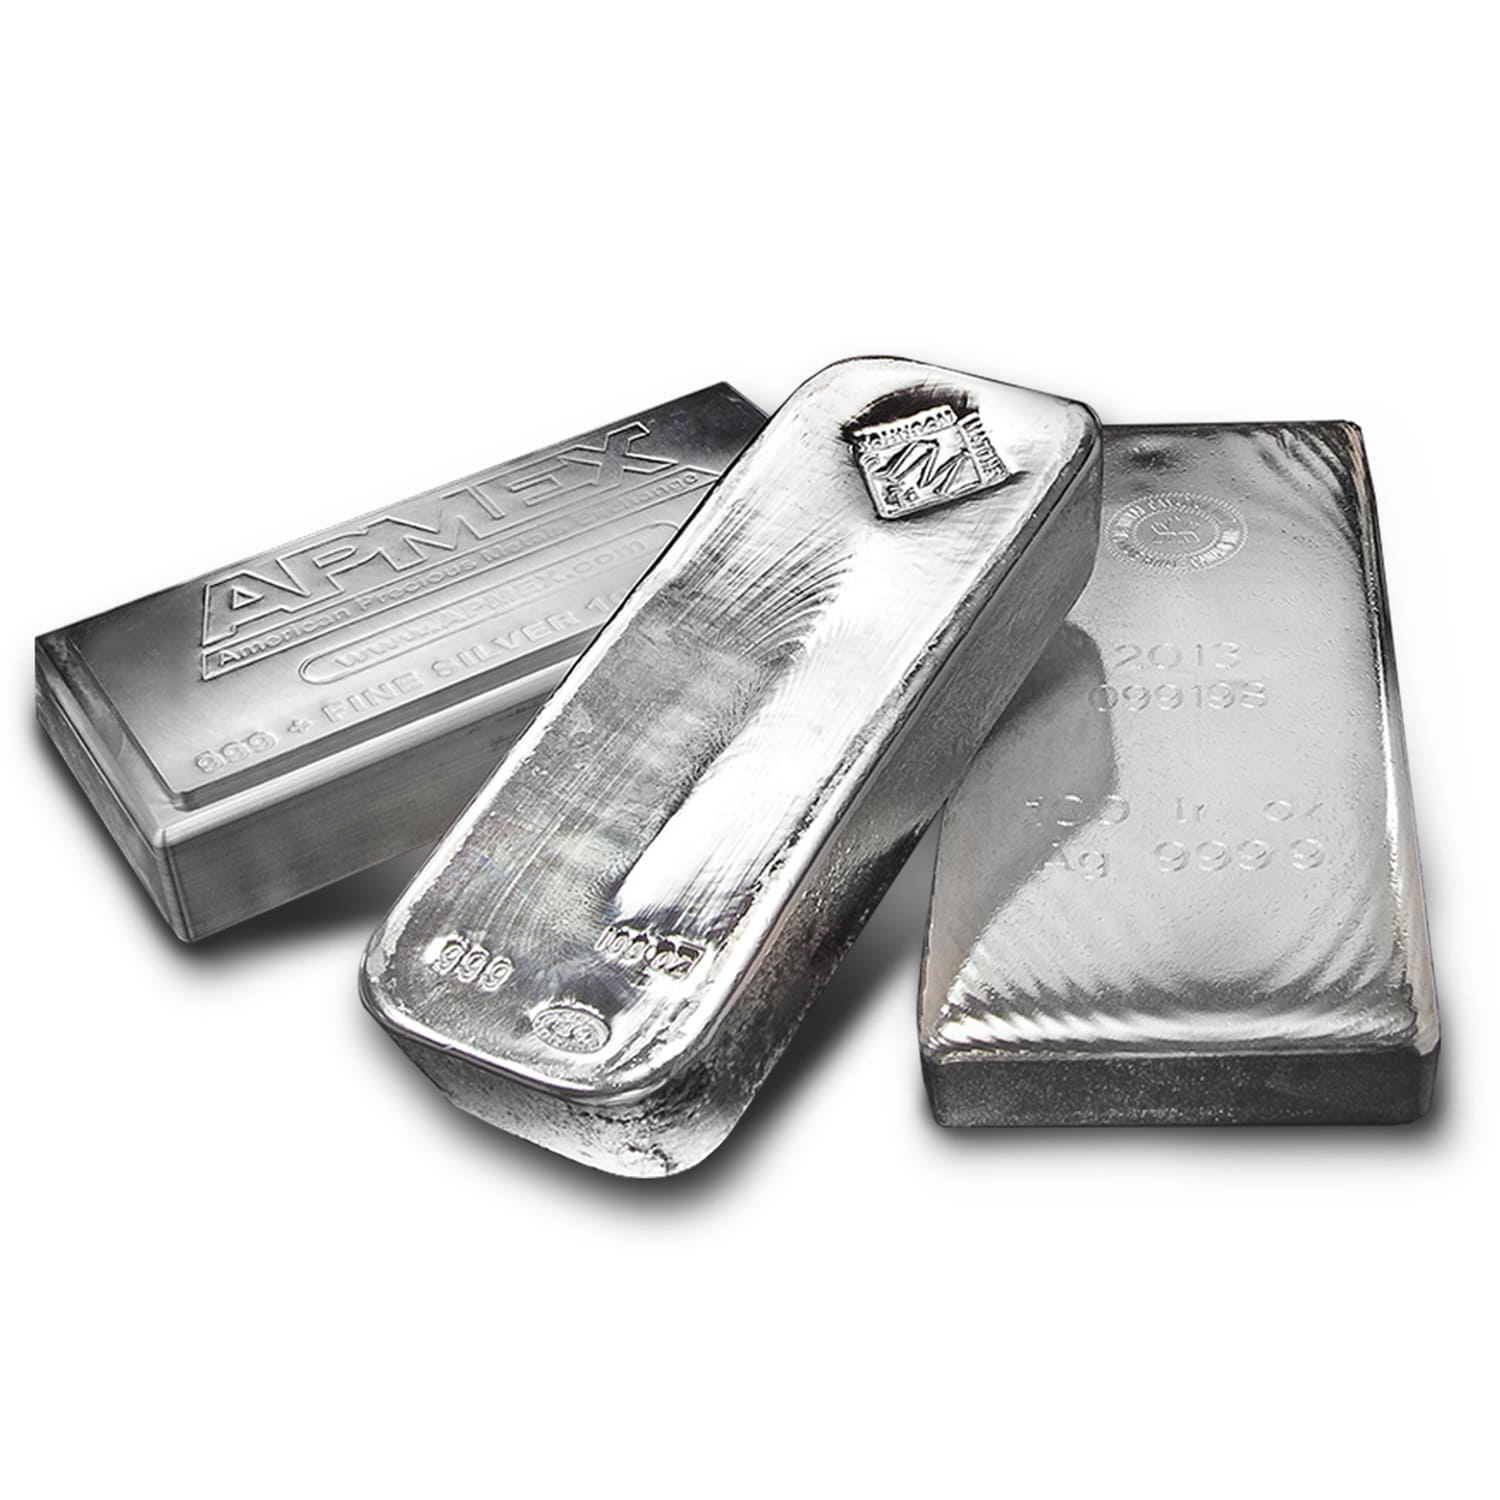 98.05 oz Silver Bars - Secondary Market